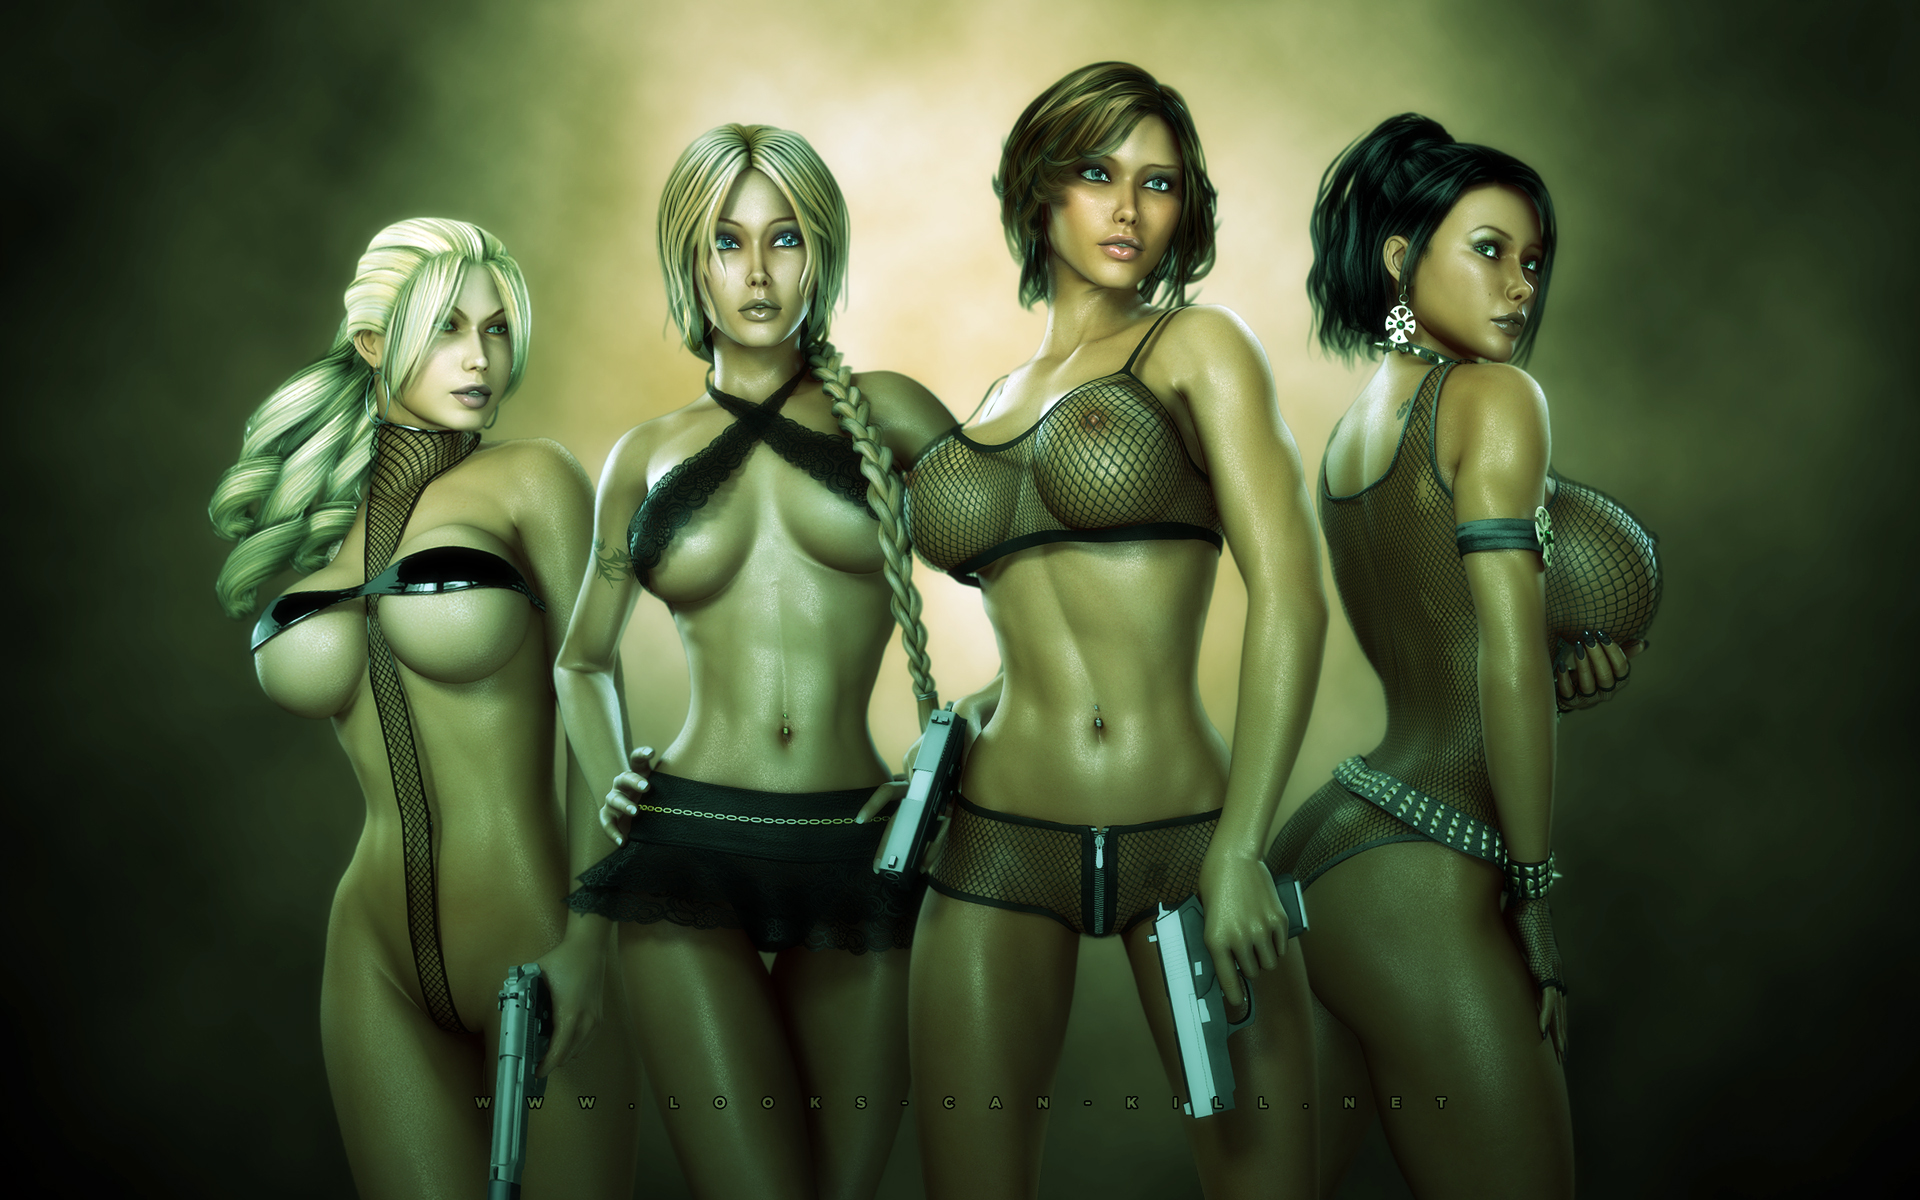 Nude warriors girls 3d wallpaper sex picture